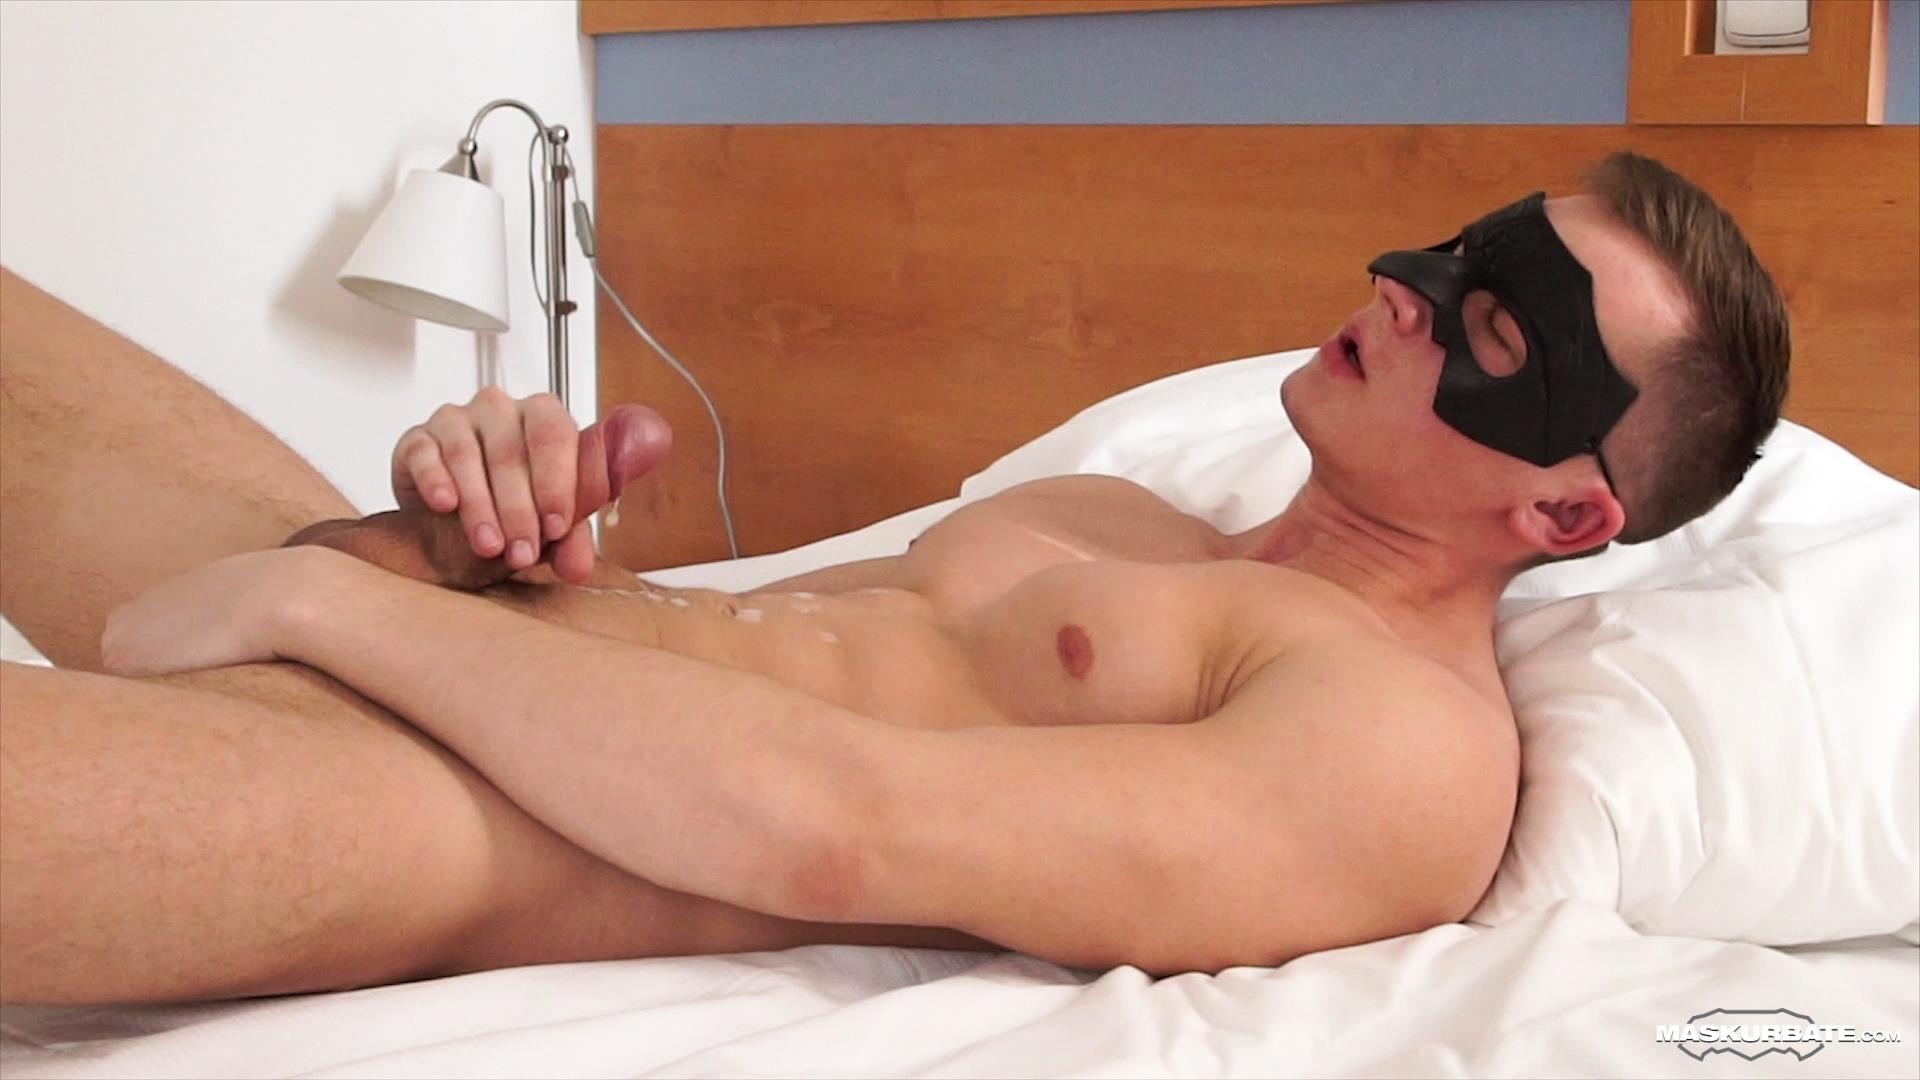 Maskurbate-Andy-Hotel-Bellman-Strokes-Big-Uncut-Cock-13 Paying The Hotel Bellman To Jerk His Big Uncut Cock In My Room